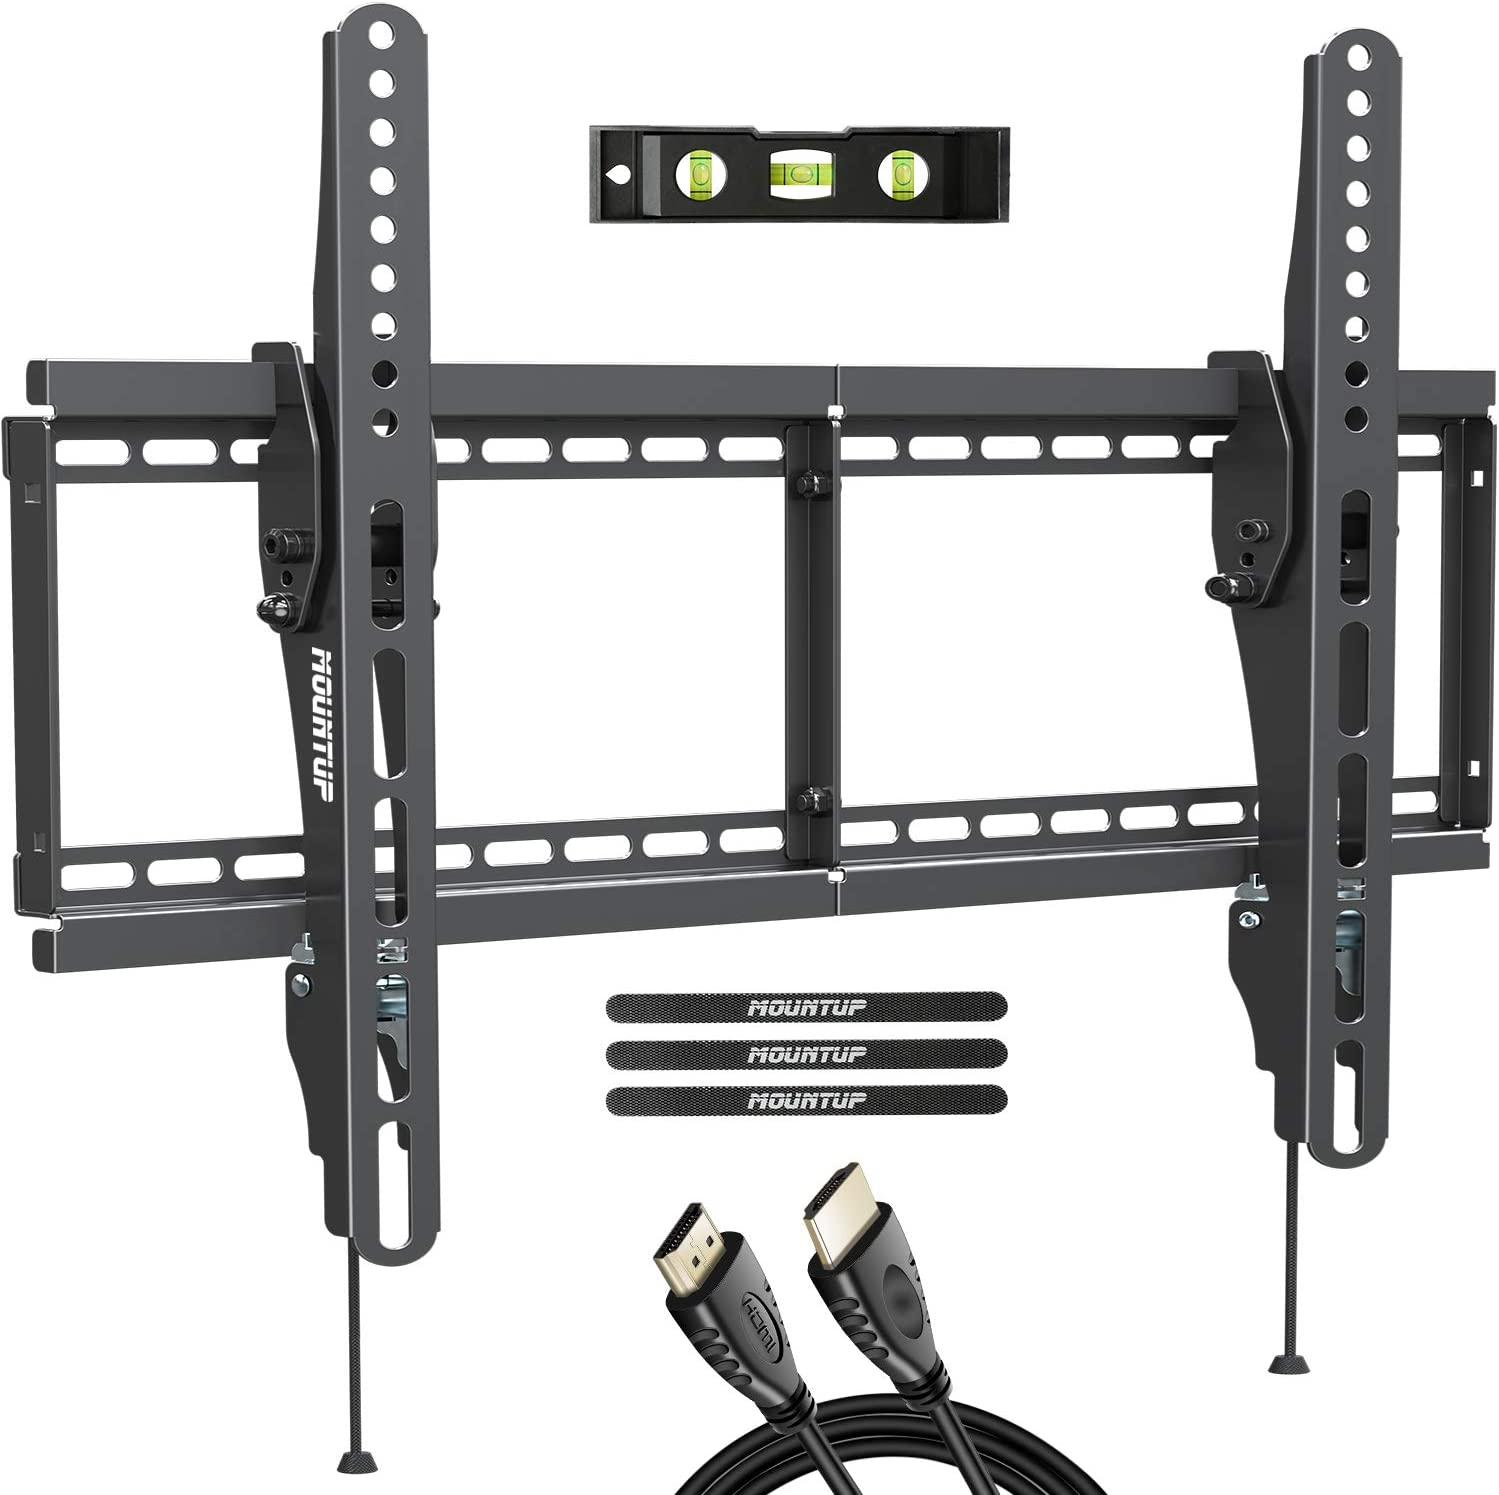 "MOUNTUP Tilting TV Wall Mount Bracket for Most 37-70 Inches TVs, TV Mount with 10 Degrees Smooth Tilt, Low Profile TV Wall Mount, Easy Install on 16"", 18"", 24"" Studs Loading Capacity 110 lbs MU0008"